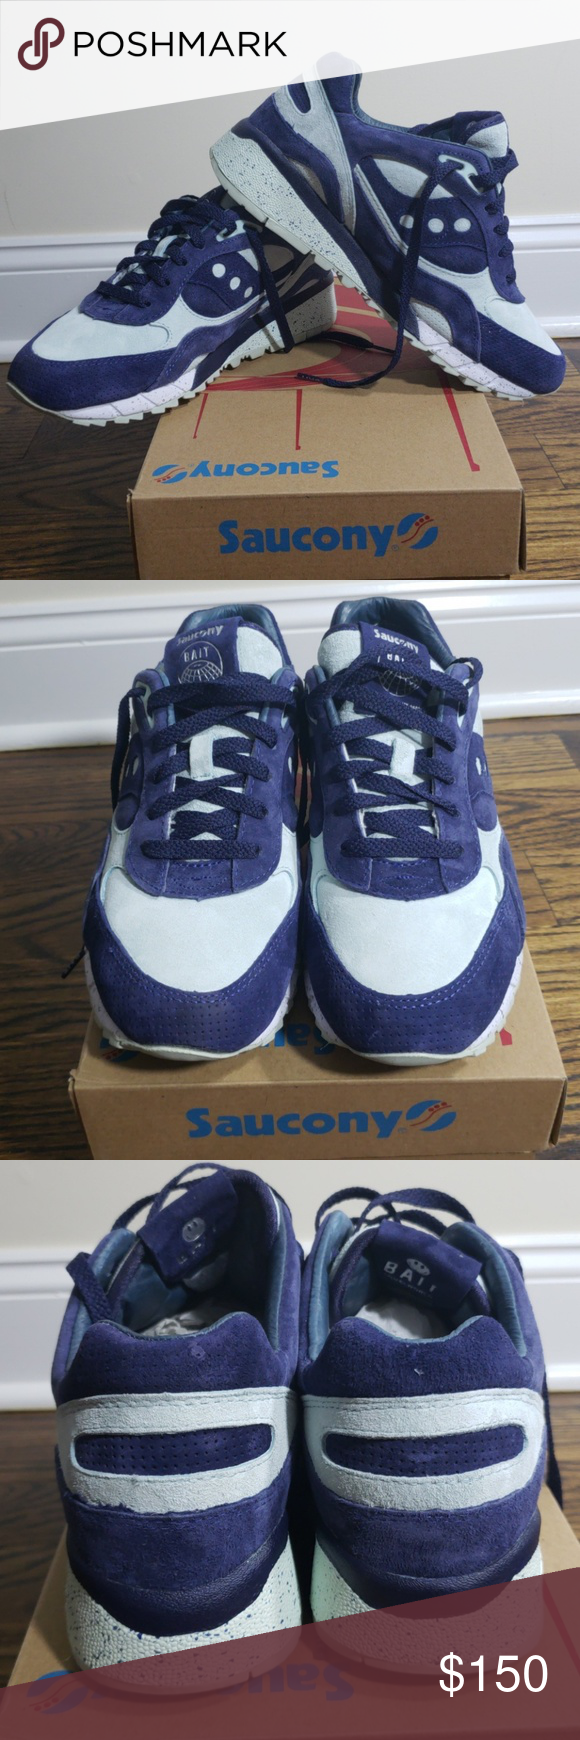 11940df8b330 Saucony x Bait Shadow 6000 Cruelworld 5 BAIT X SAUCONY SHADOW 6000  CRUELWORLD 5 - NEW WORLD WATER Size 8. Purchased directly from Bait on  release date.